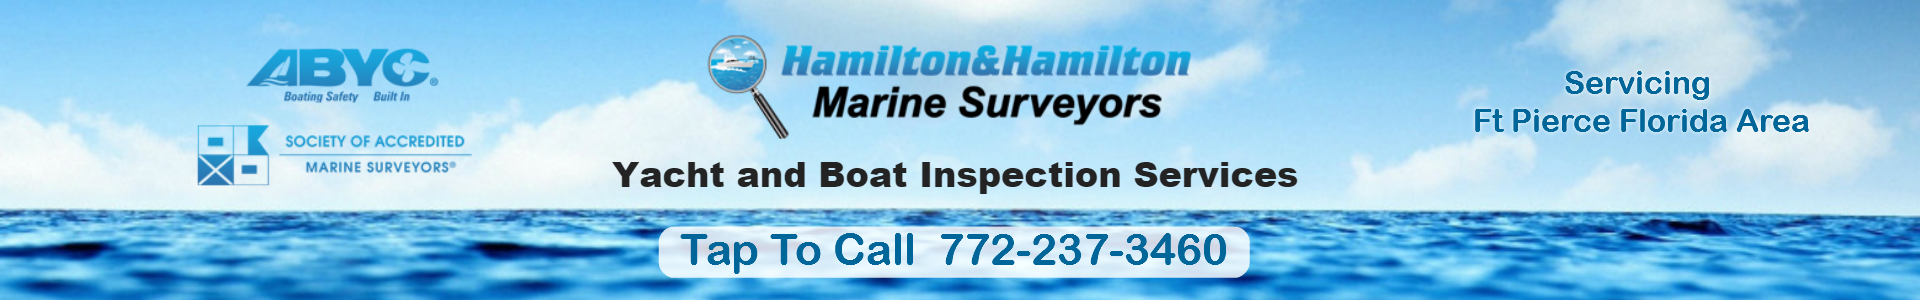 Marine Surveyor Ft Pierce FL Boat Inspection SAMS Surveyors Ft Pierce